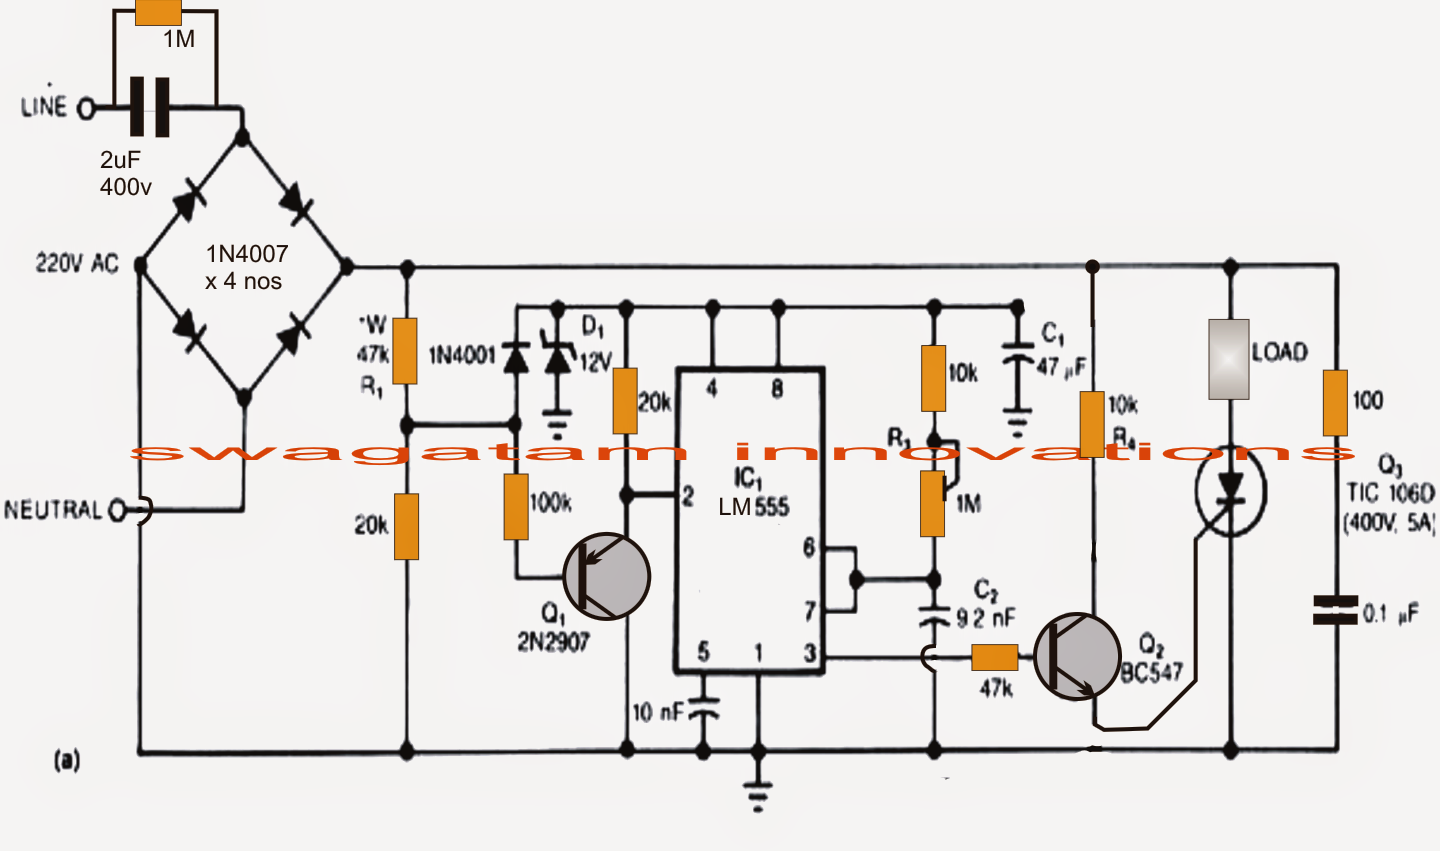 Pin By Km Faisal On A1 Pinterest Power Supply Circuit 12 Volt Led Flasher 555 Http Exlectronixblogspotcom 2012 A Simple Yet Smart Solution Is Implemented Here Using Ic In Its Monostable Mode To Control Rush Surge Transfomerless Via Zero